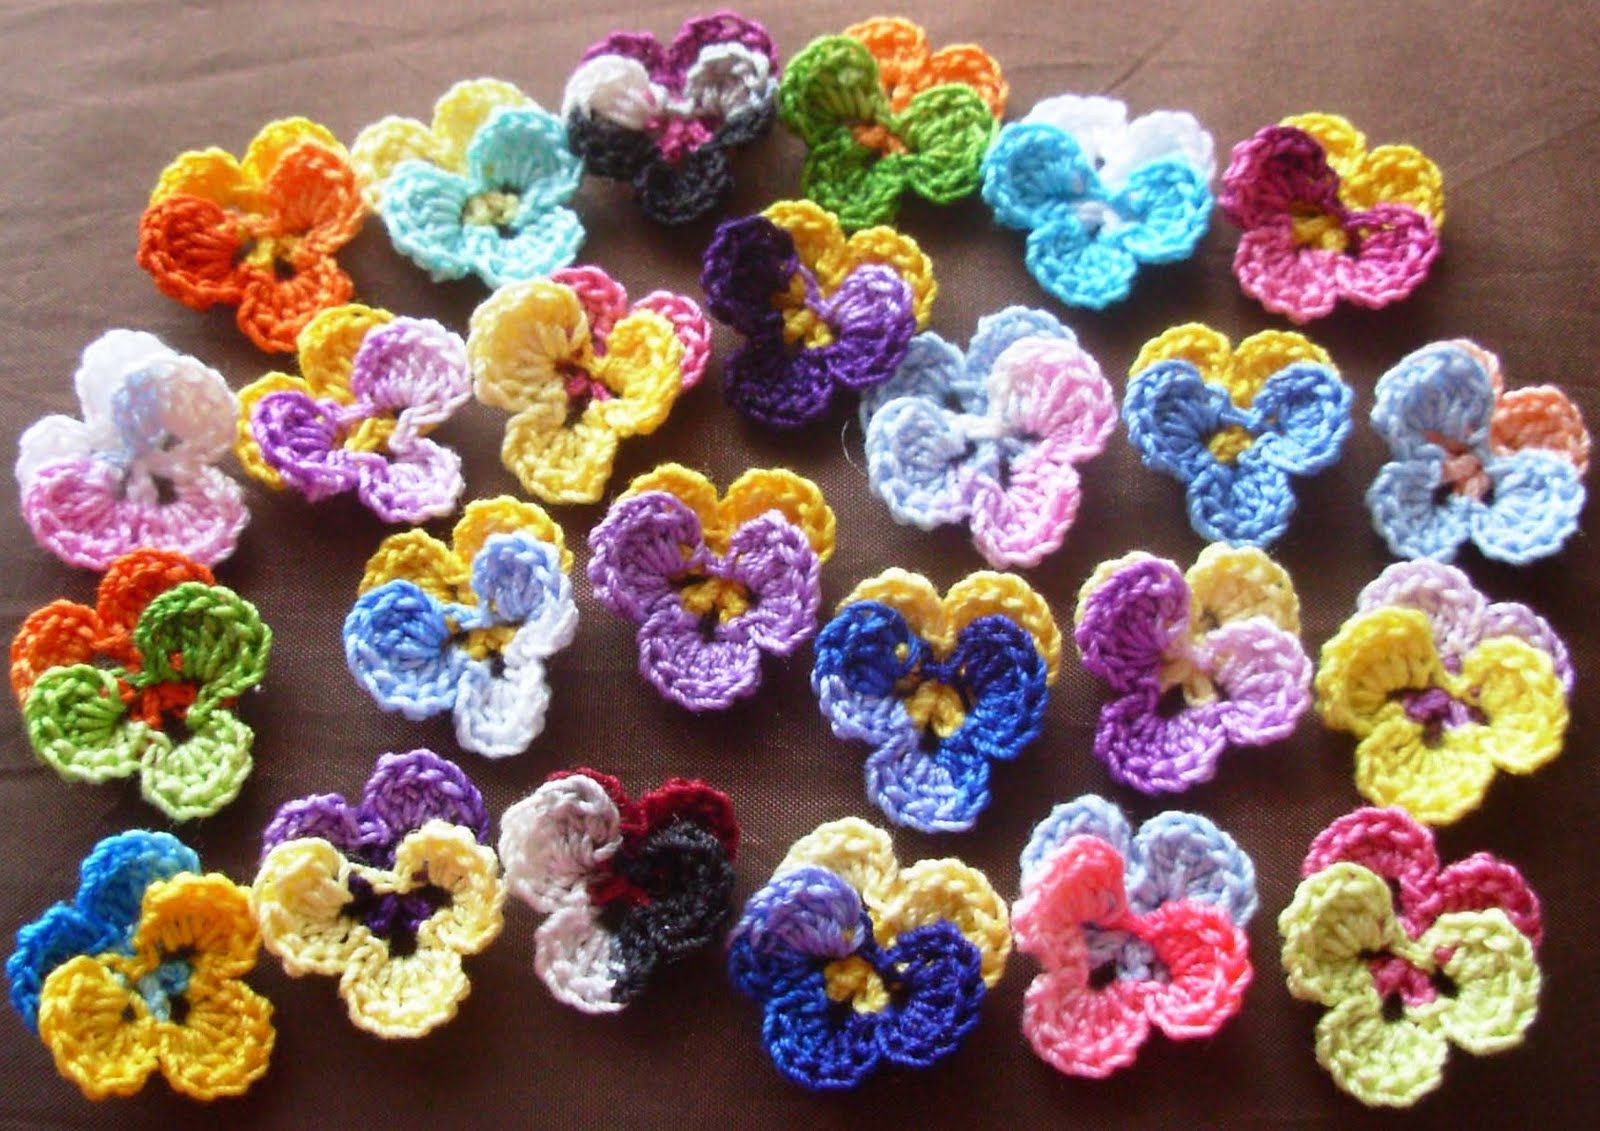 Crochet A Flower : Crochet Flowers: Ideas for using crochet flowers in projects